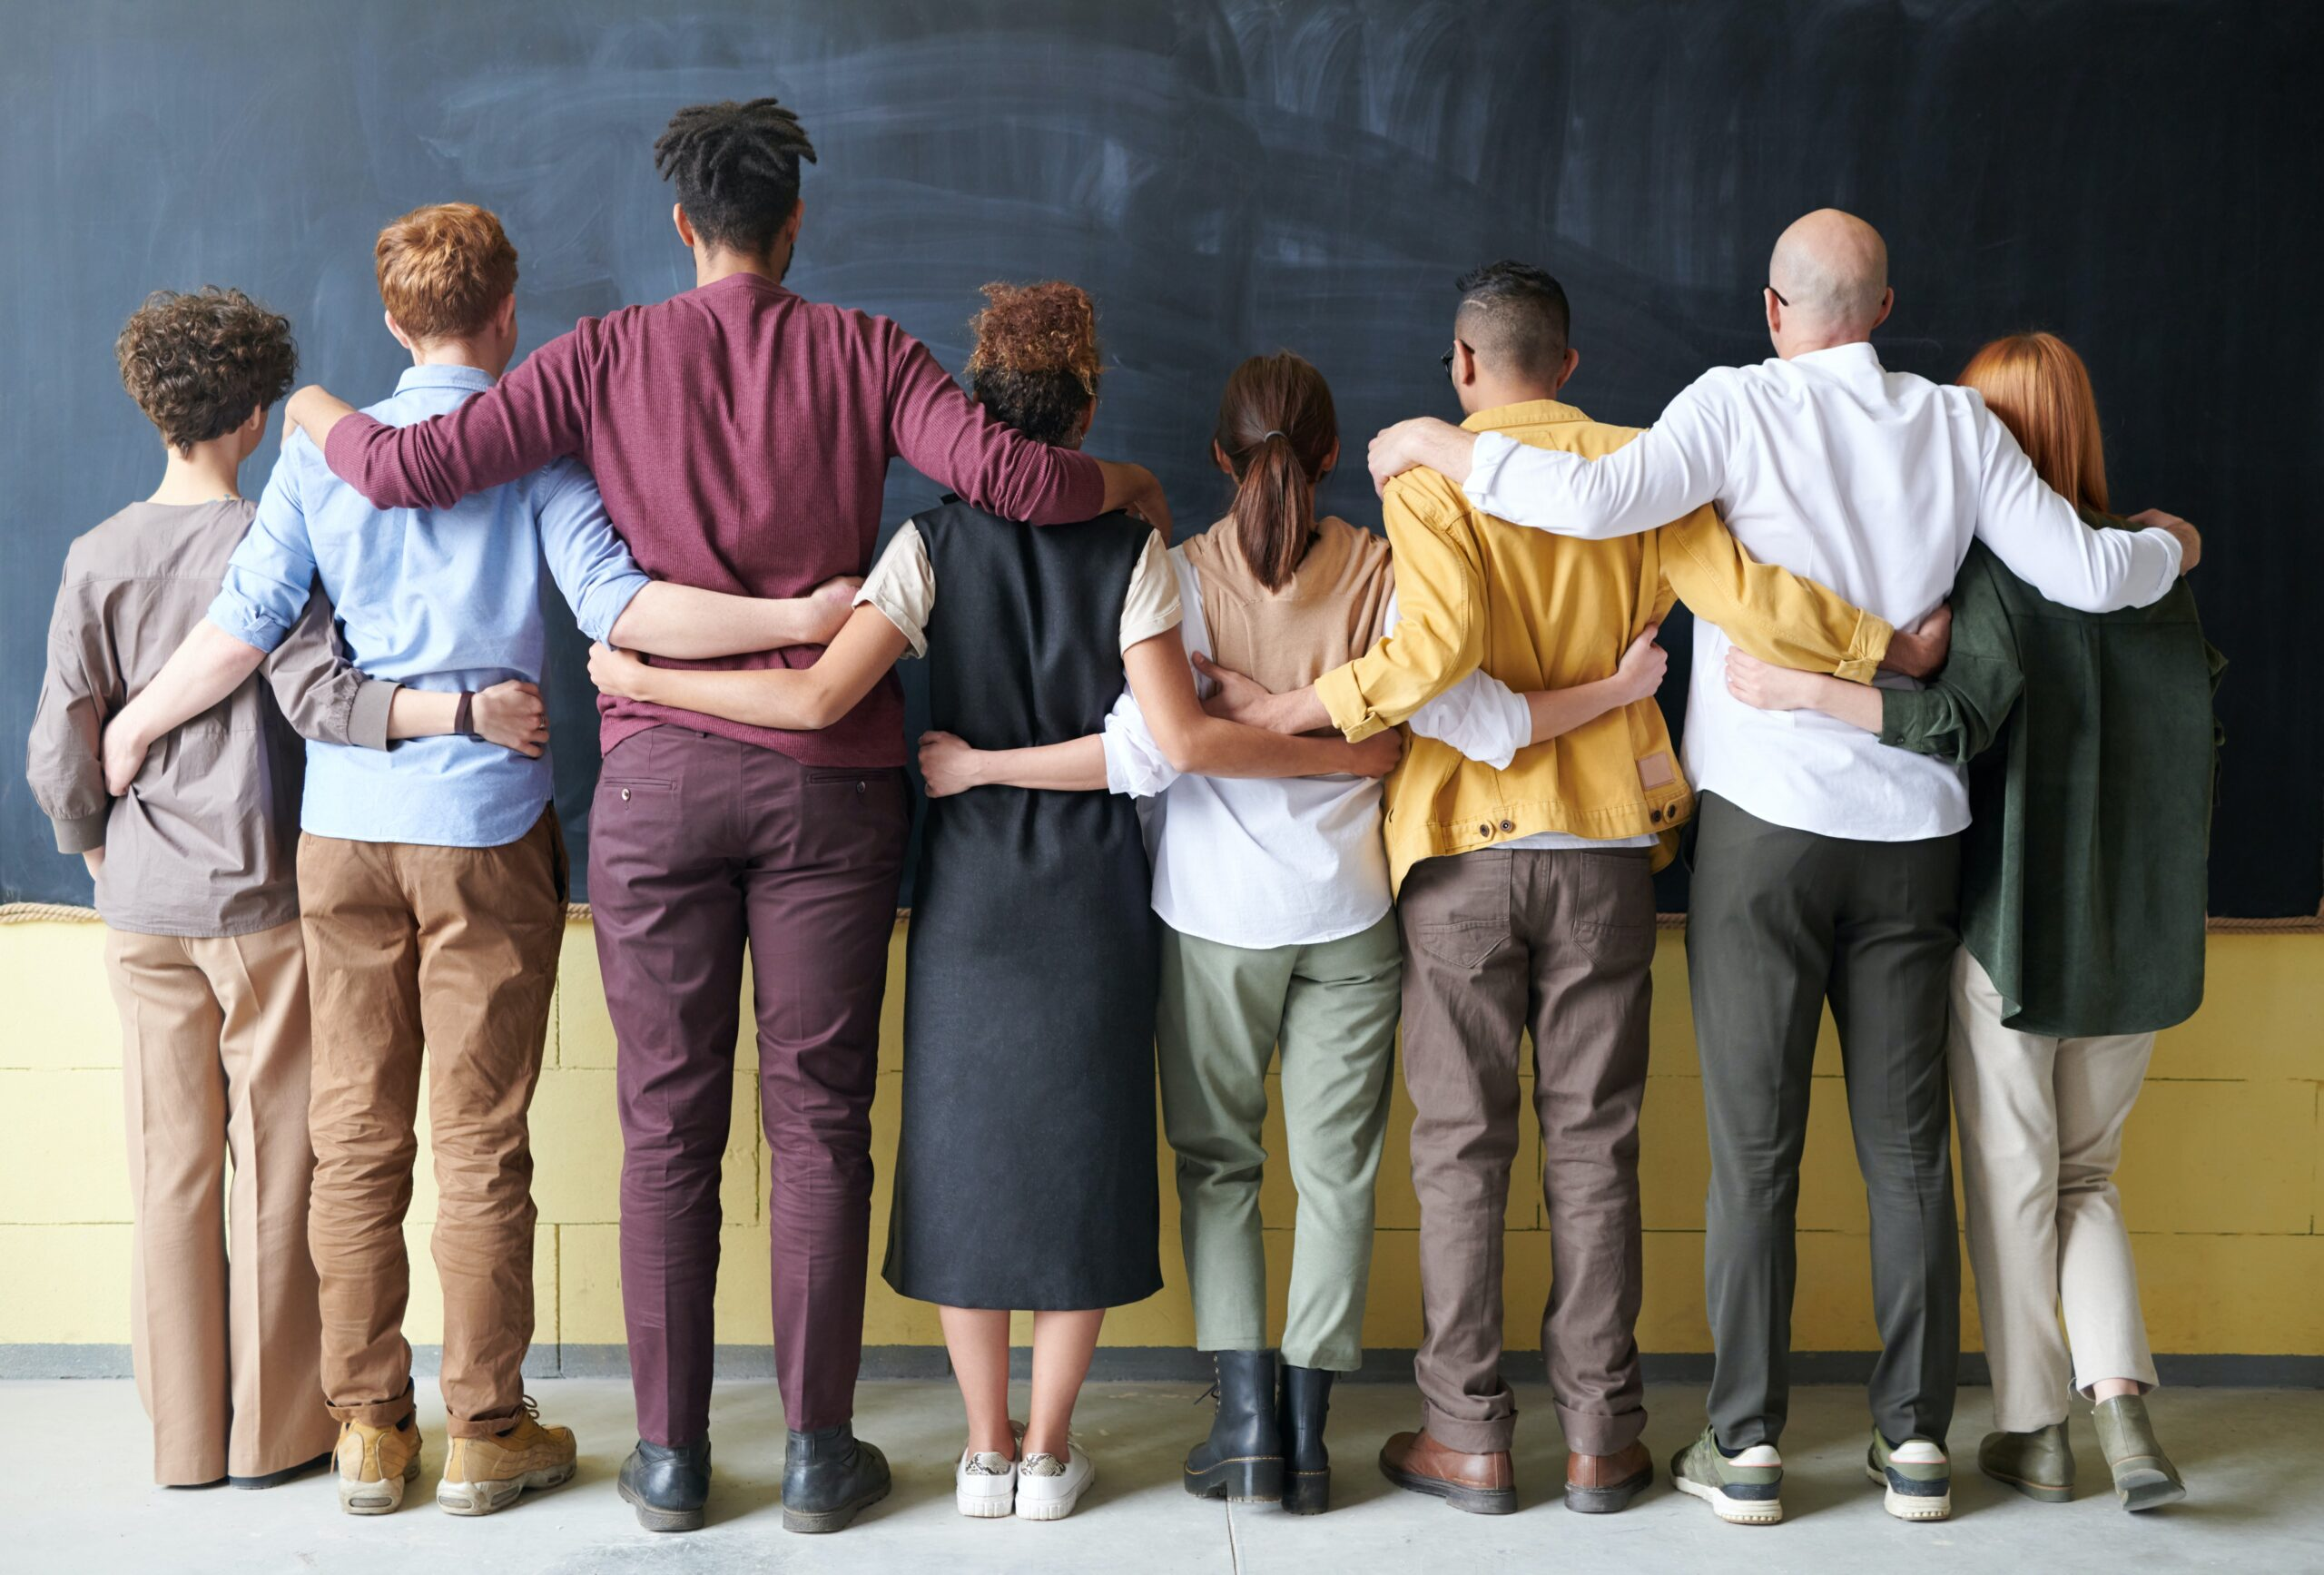 A group of people stand with their backs to the camera and their arms around each other